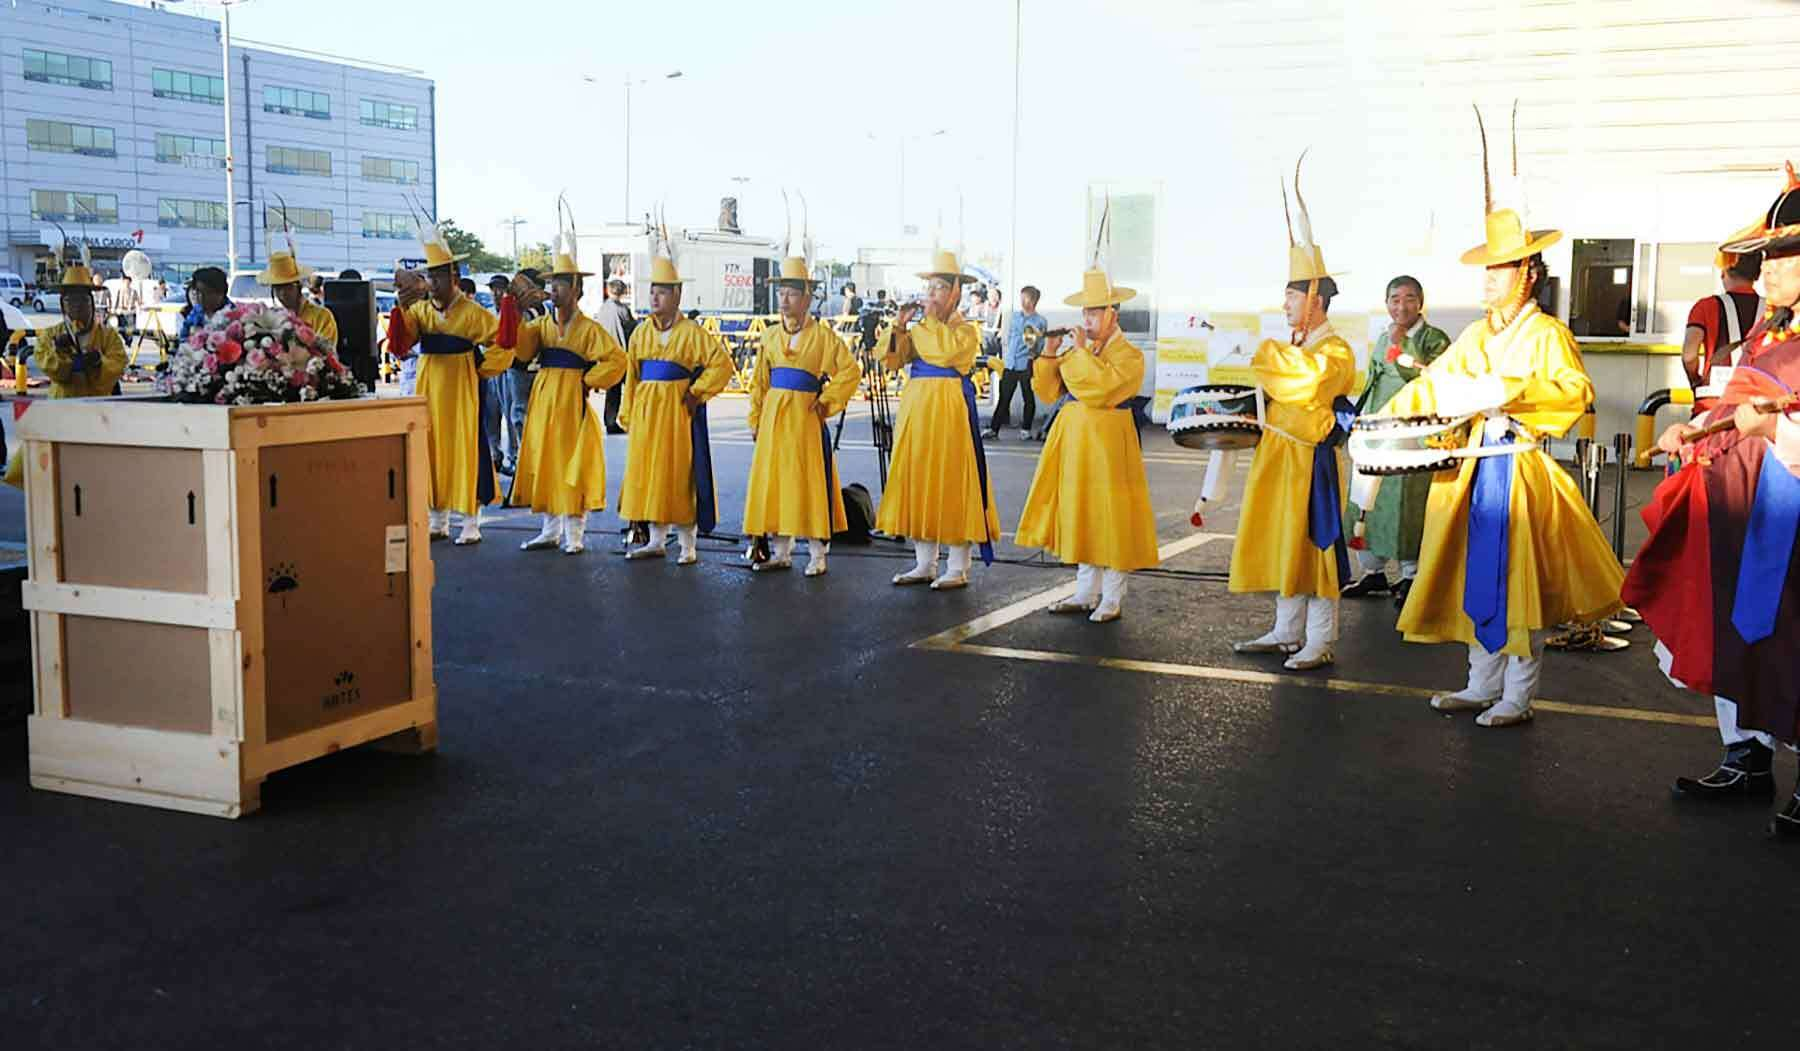 A large gathering of people in bright yellow dresses, some with drums give an official greeting an art object in a crate being offloaded from a truck at the airport.